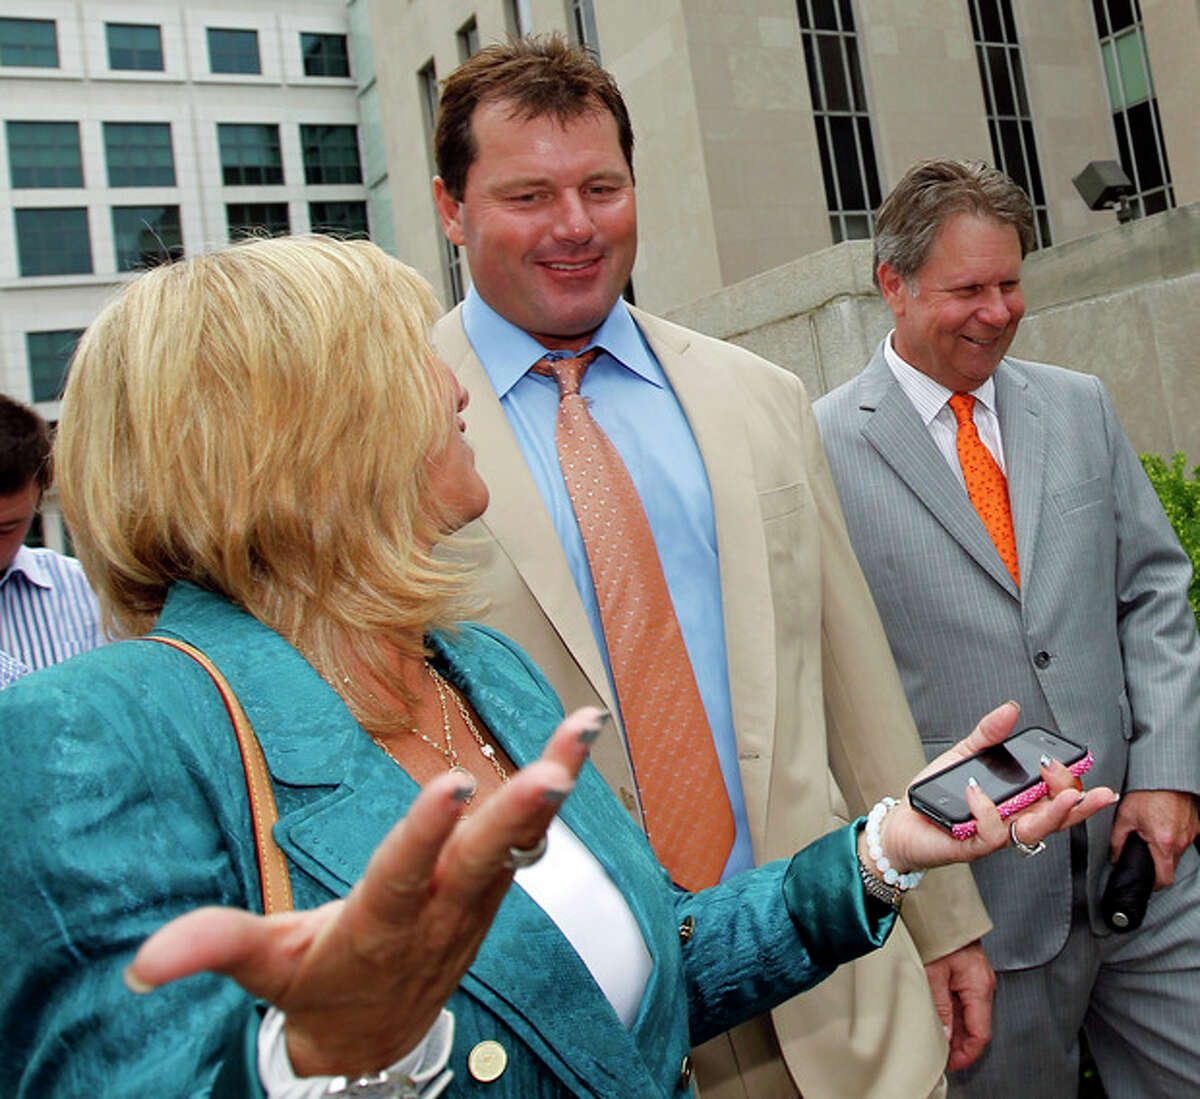 Former Major League Baseball pitcher Roger Clemens, center leaves federal court with his wife Debbie Clemens, left, and others, Monday, June 18, 2012 in Washington after his acquittal on charges of lying to Congress in 2008 when he denied ever using performance-enhancing drugs. (AP Photo/Alex Brandon)